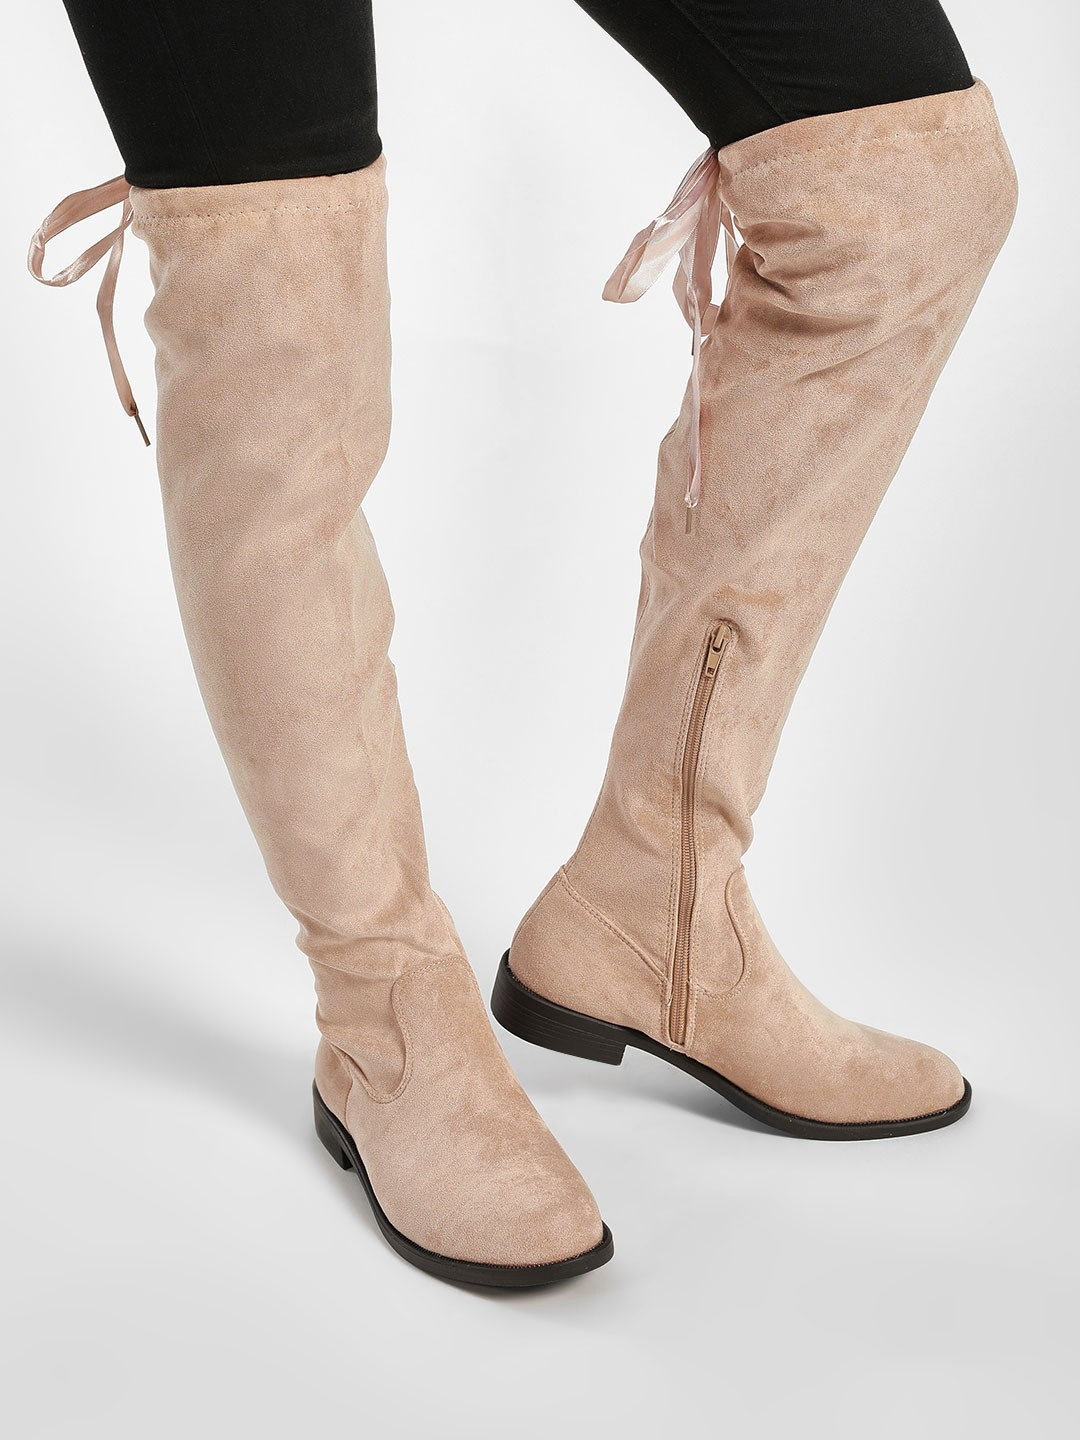 My Foot Couture Beige Suede Finish Knee High Boots 1